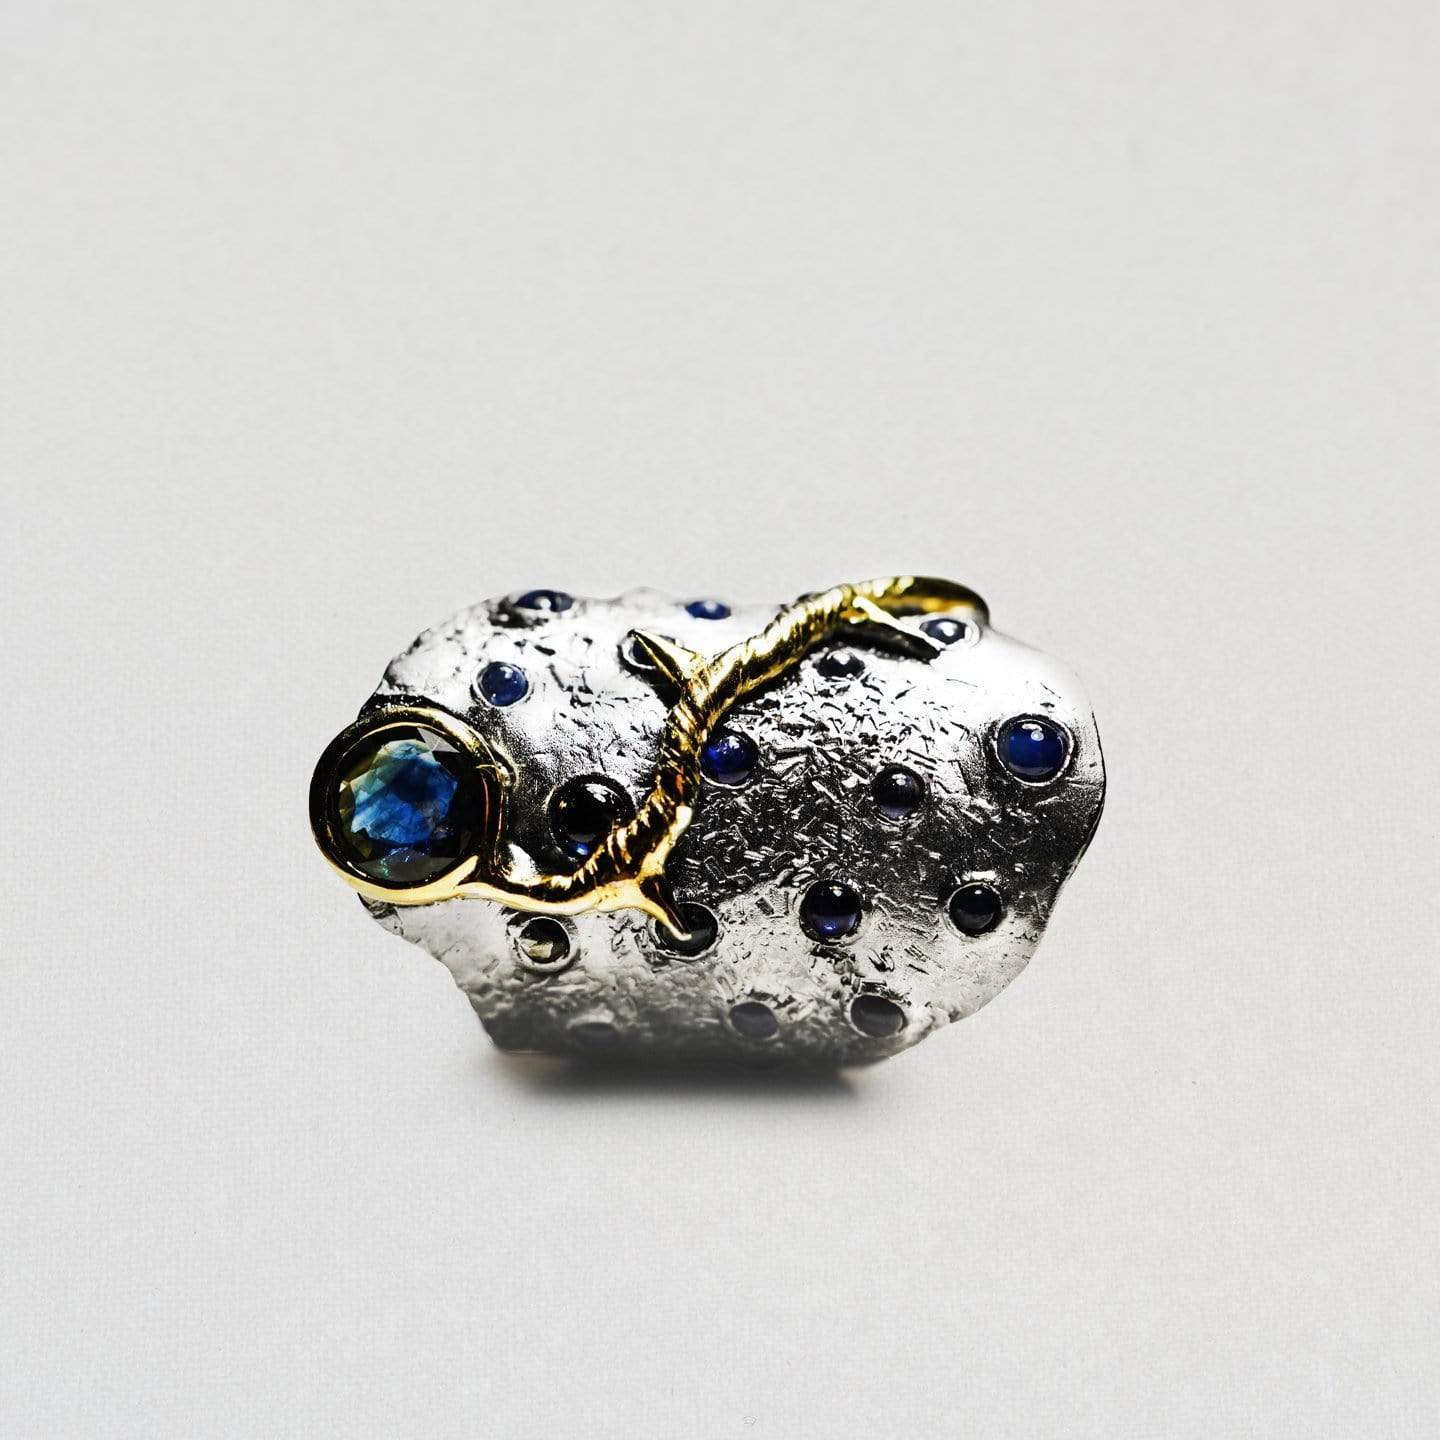 Cassia Ring, Exclusive, Gold, gray, Rhodium, Sapphire, spo-disabled, StoneColor:DeepBlue, Style:Everyday, Type:StoneCandyScattered Ring